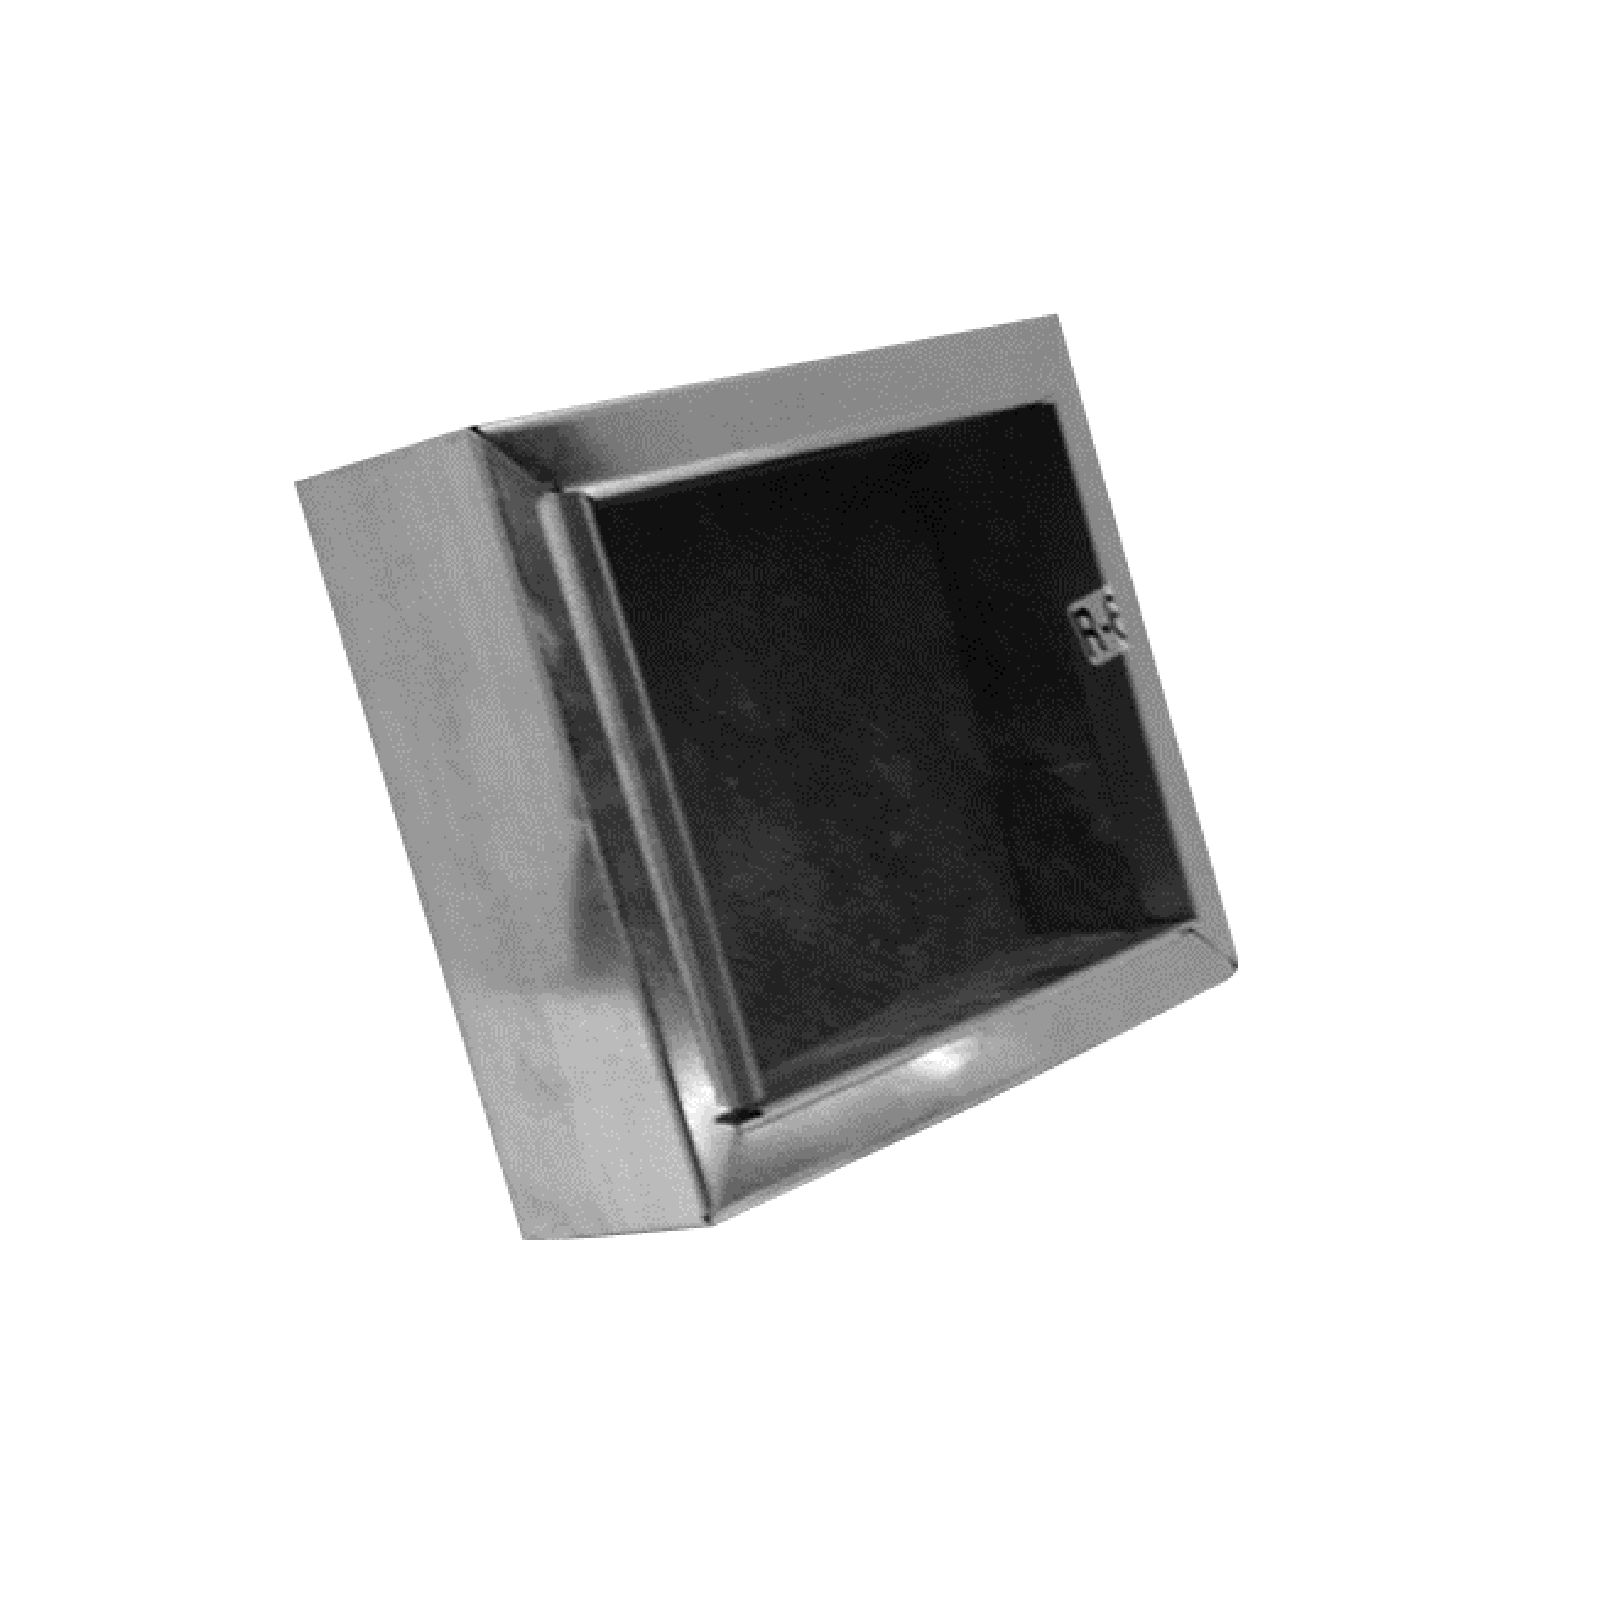 "Mitchell Metal 40R61208 - 12"" X 8"" Ductboard Register Box - R6 Ductboard Applications"